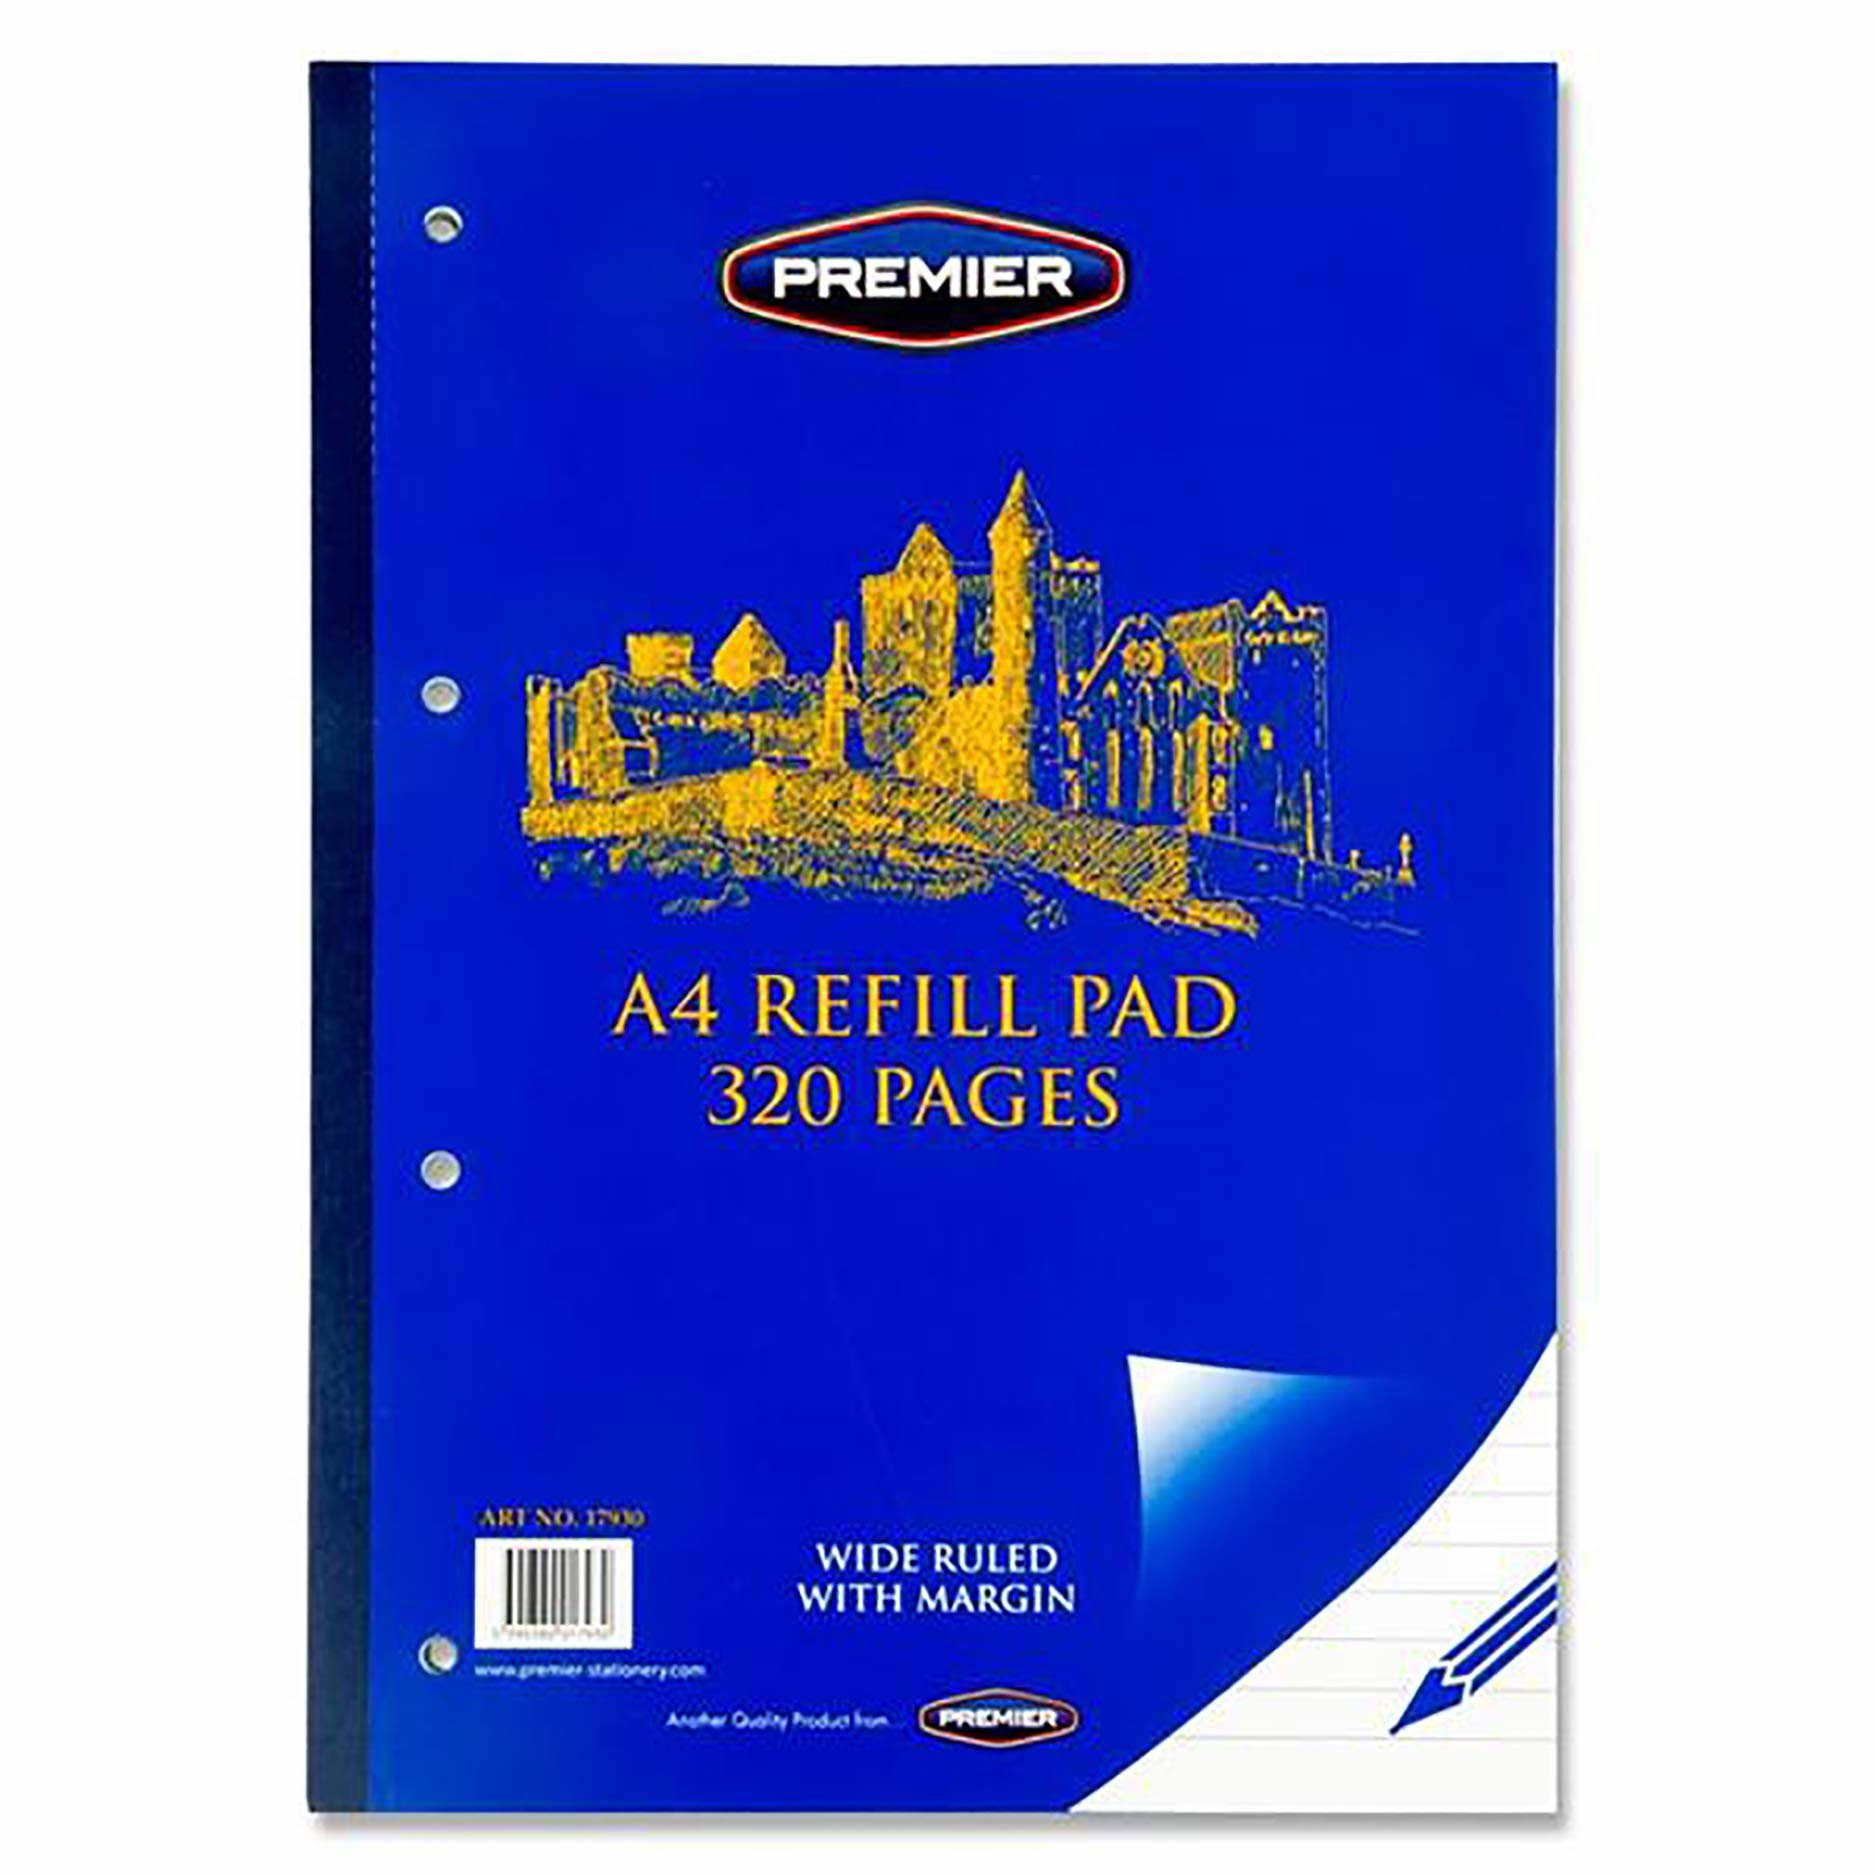 Premier A4 320-Page Refill Pad